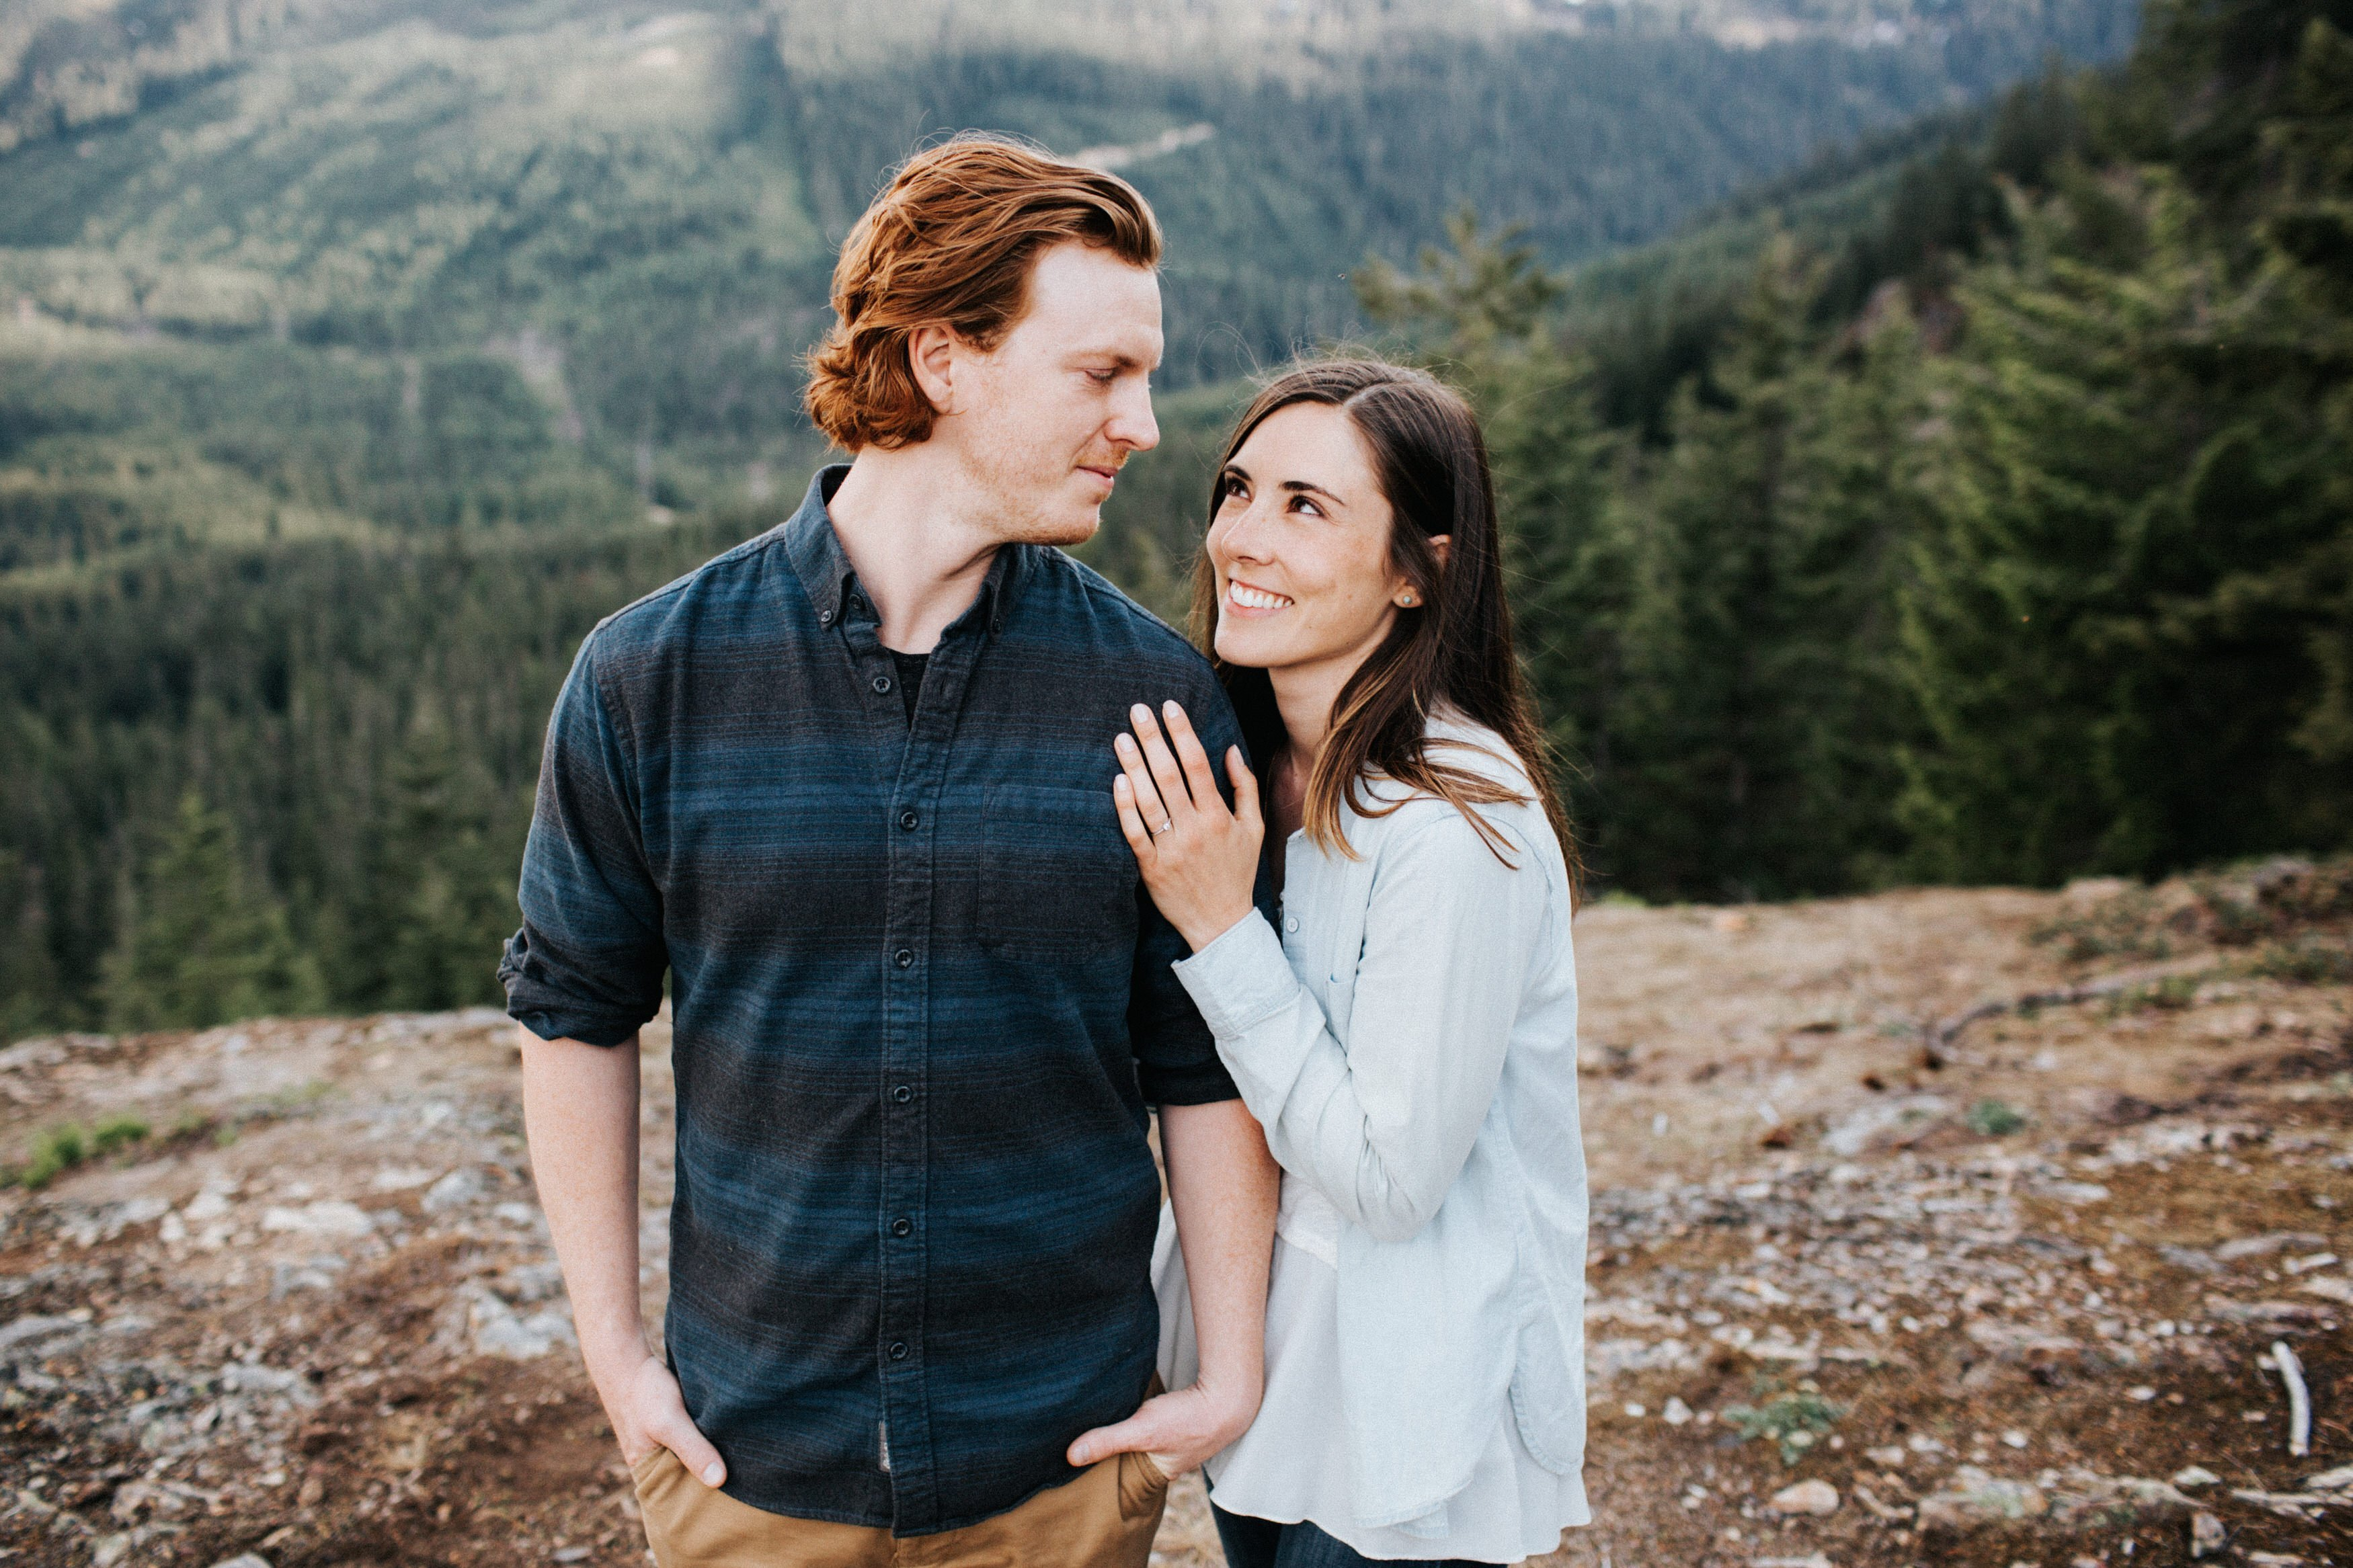 A couple looks at each other and smiles during their engagement session in the mountains